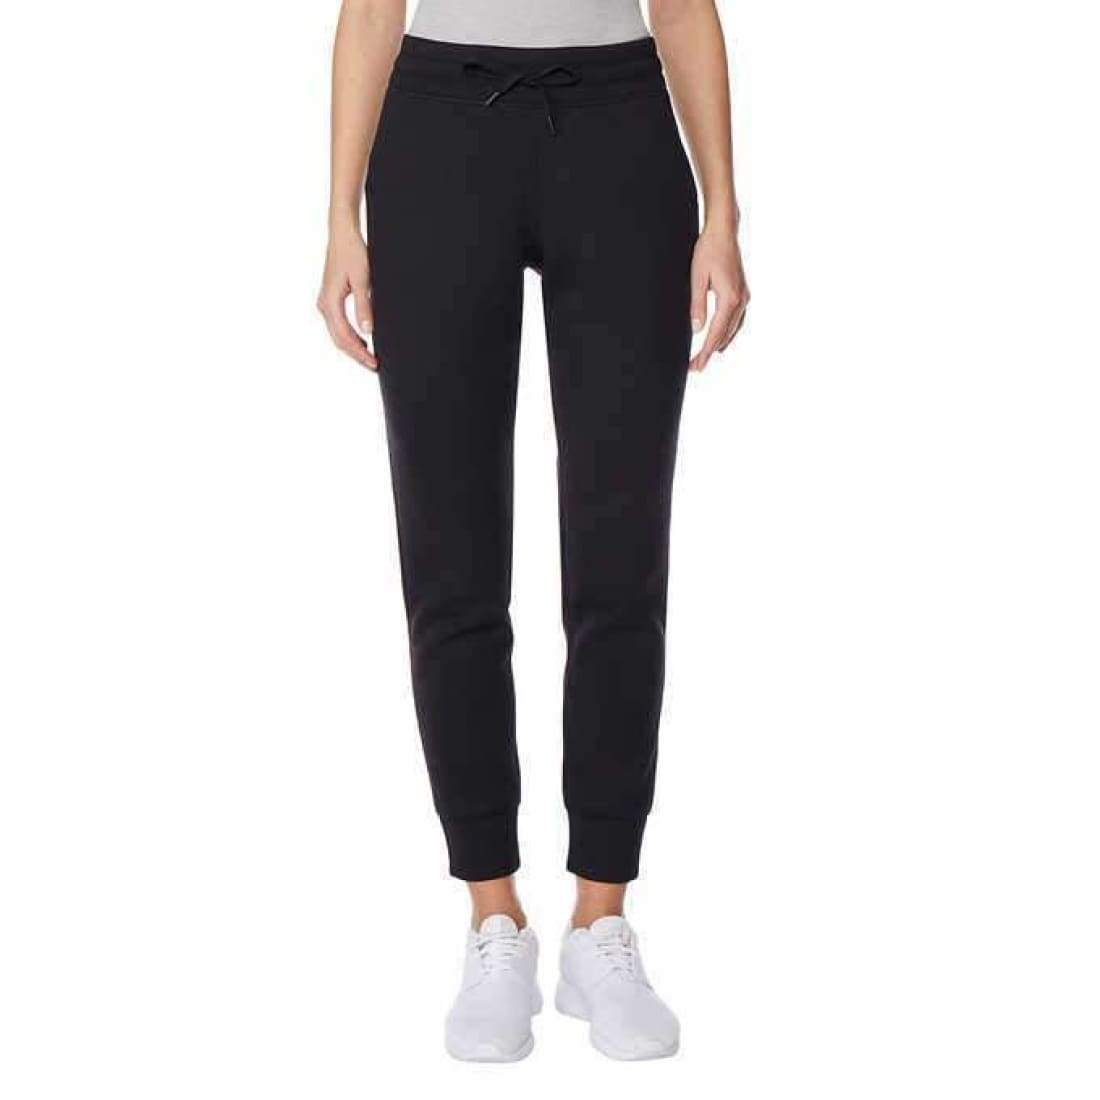 32 Degrees Ladies Tech Fleece Jogger Pant Pants & Shorts